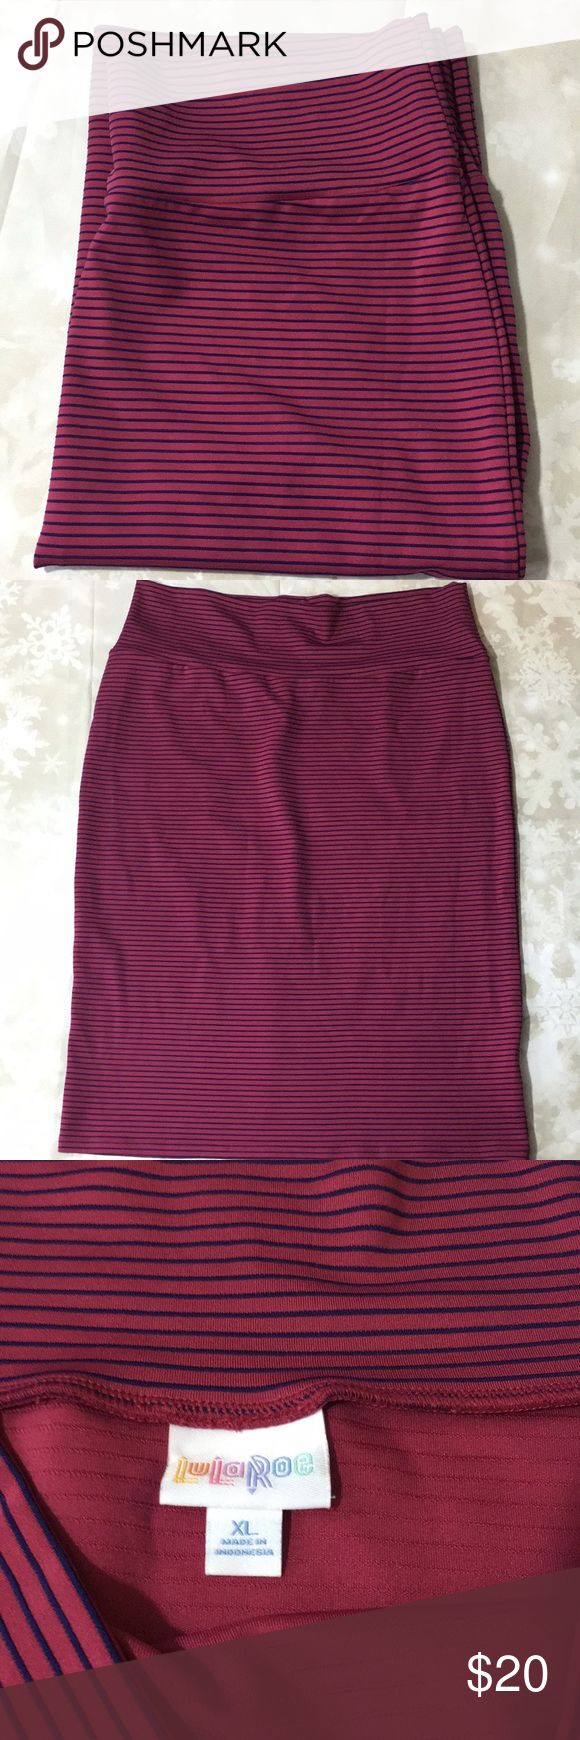 NWOT LulaRoe XL  Cassie Skirt New without tags LLR Cassie Skirt LuLaRoe Skirts Pencil